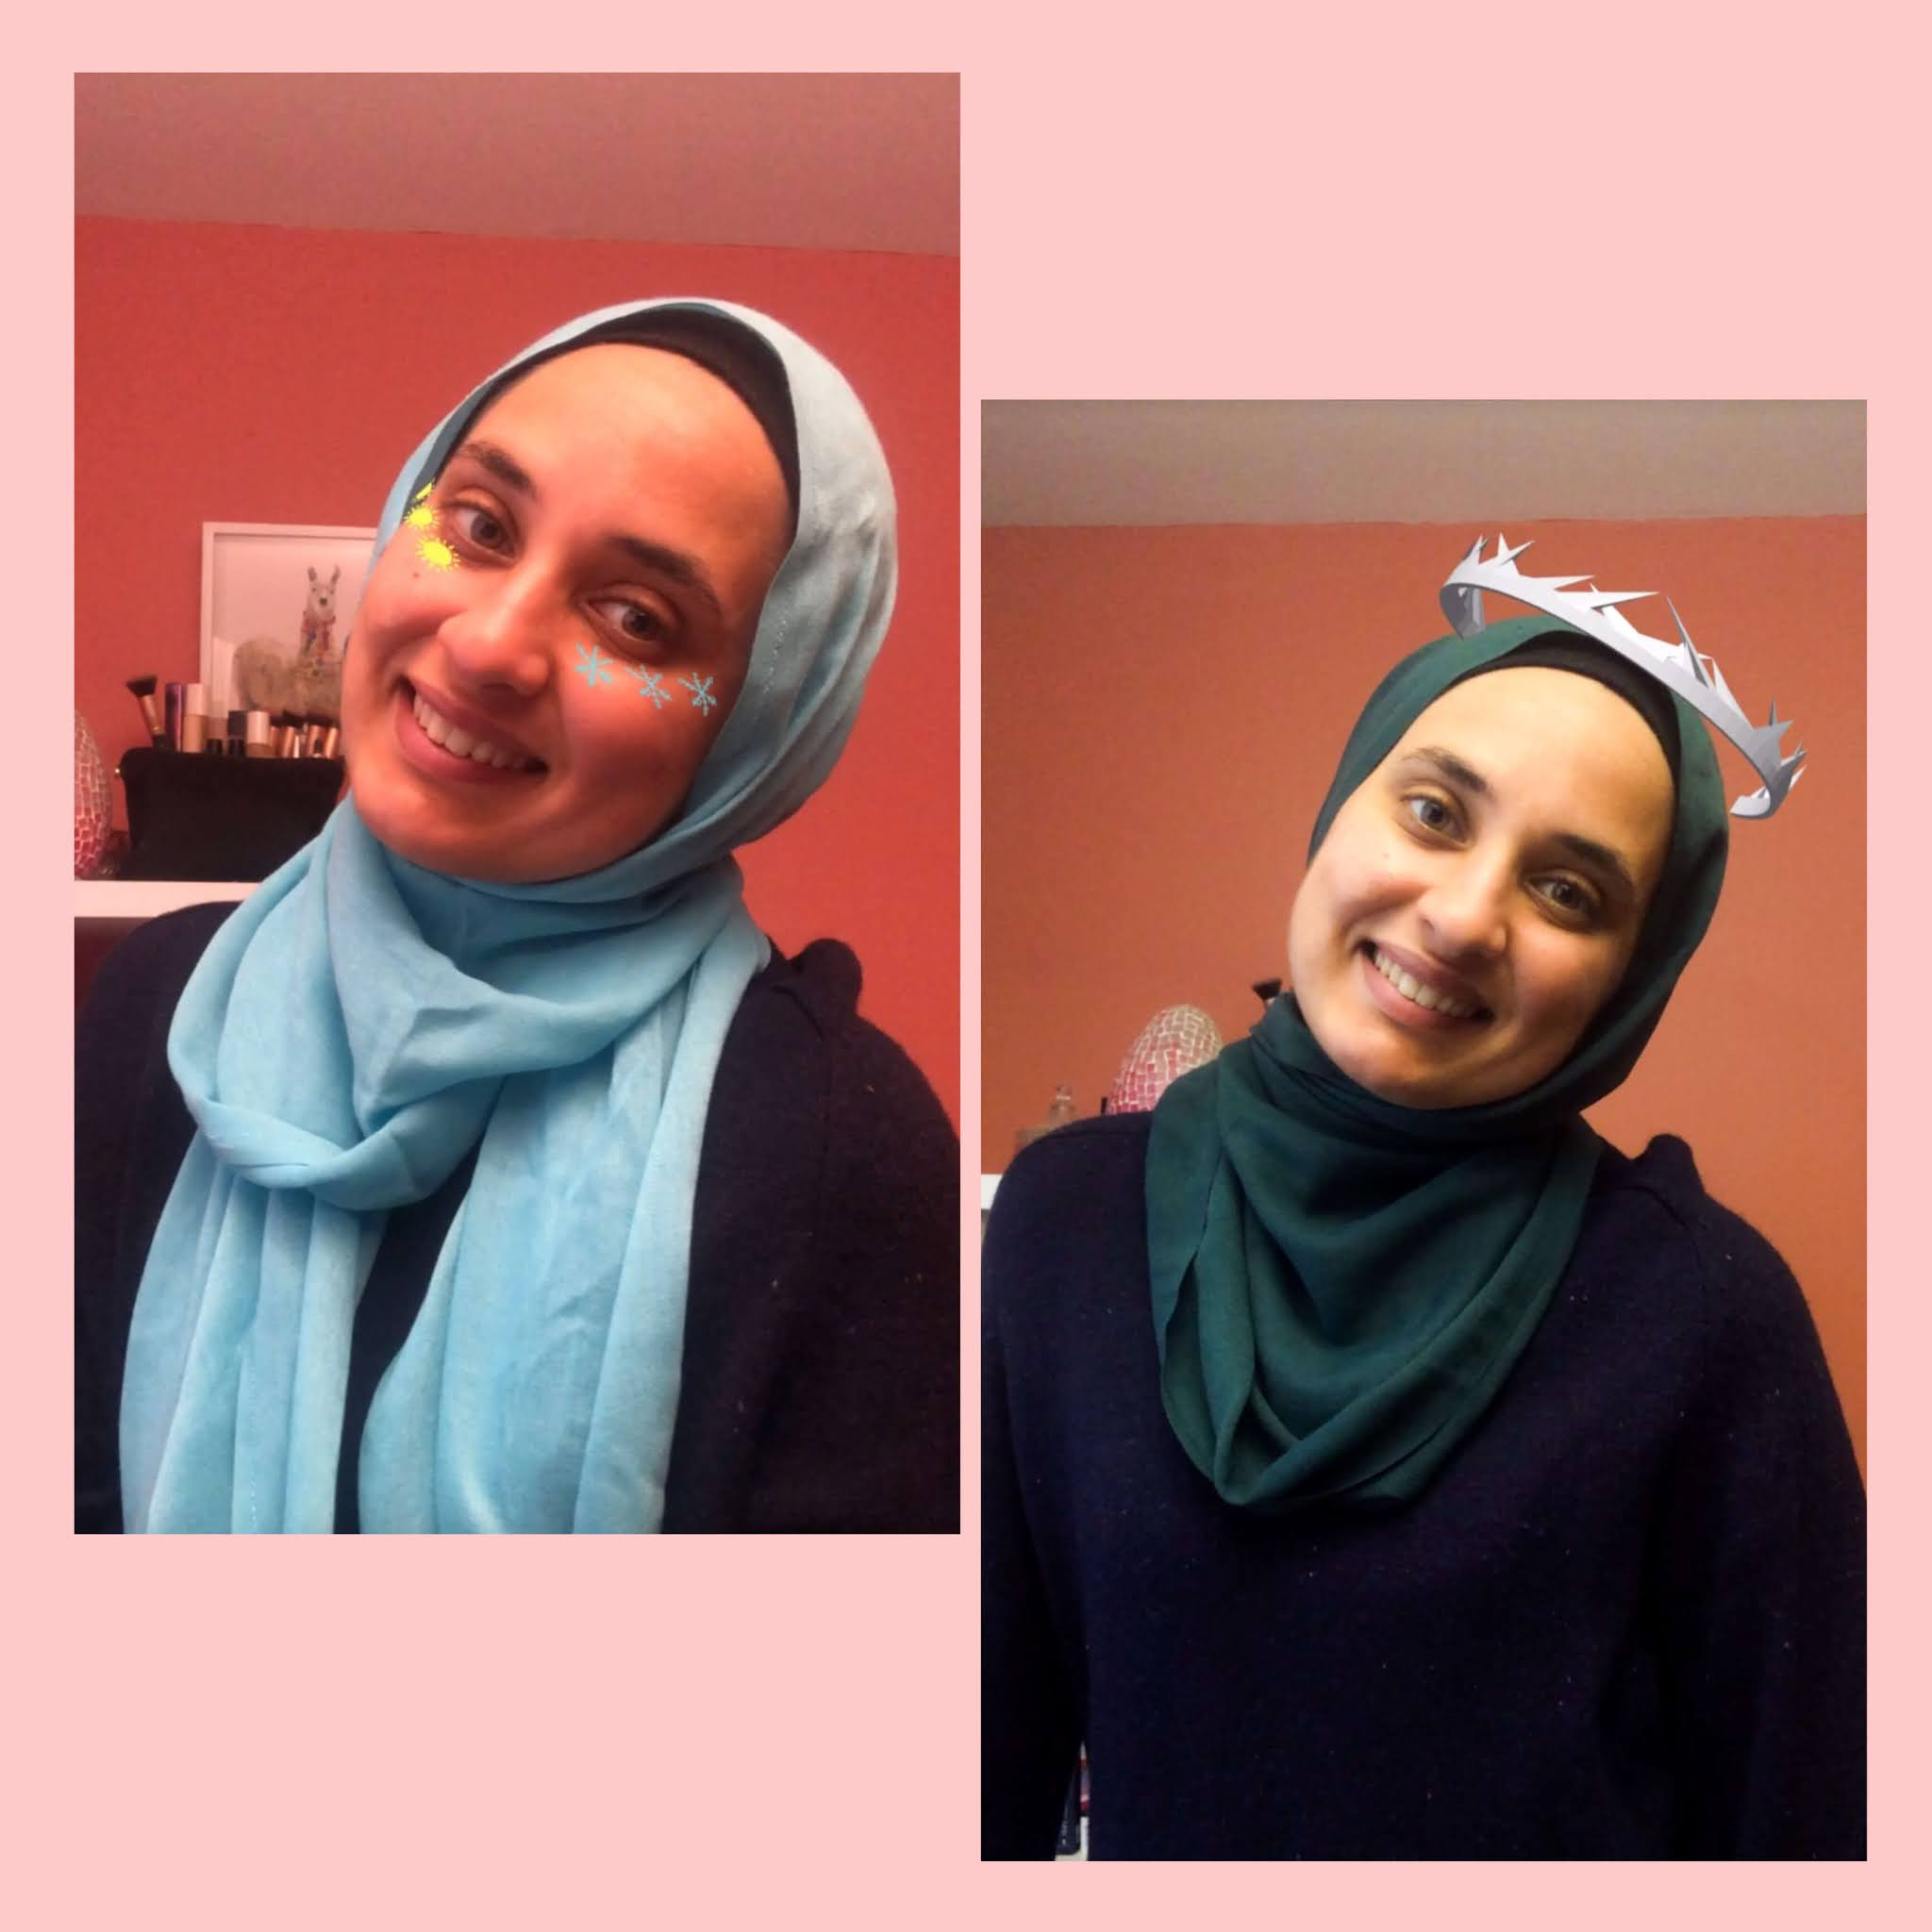 On left: Sahara with blue hijab with instagram filter with suns and snowflakes, on right with a silver crown